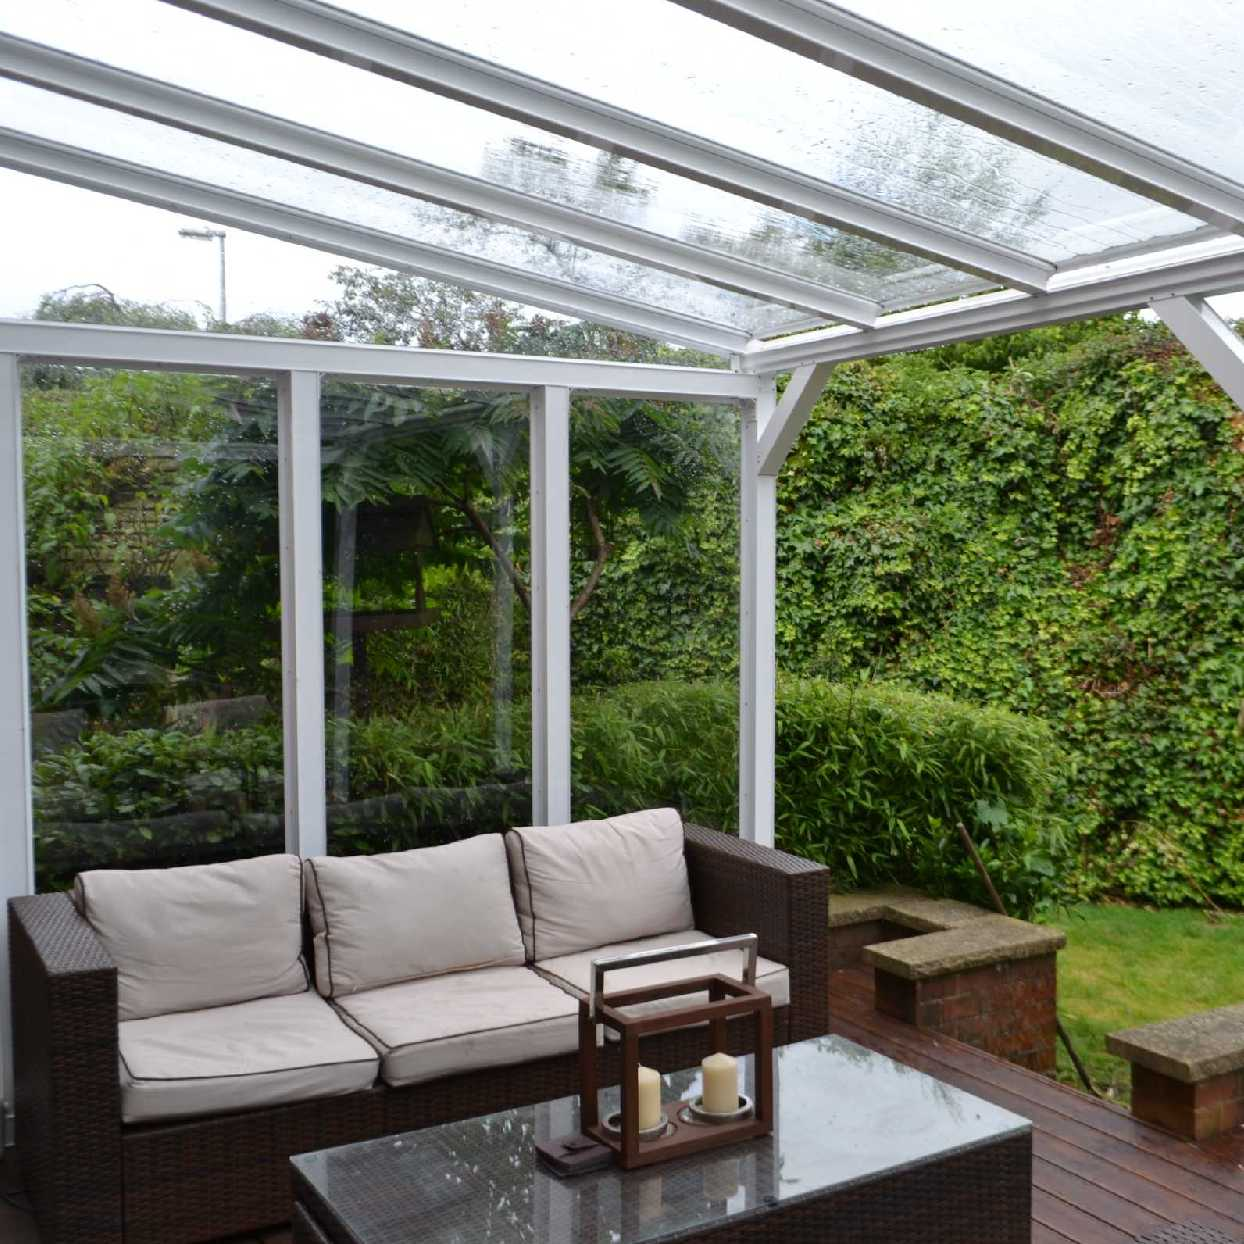 Omega Smart White Lean-To Canopy with 6mm Glass Clear Plate Polycarbonate Glazing - 10.5m (W) x 3.5m (P), (5) Supporting Posts